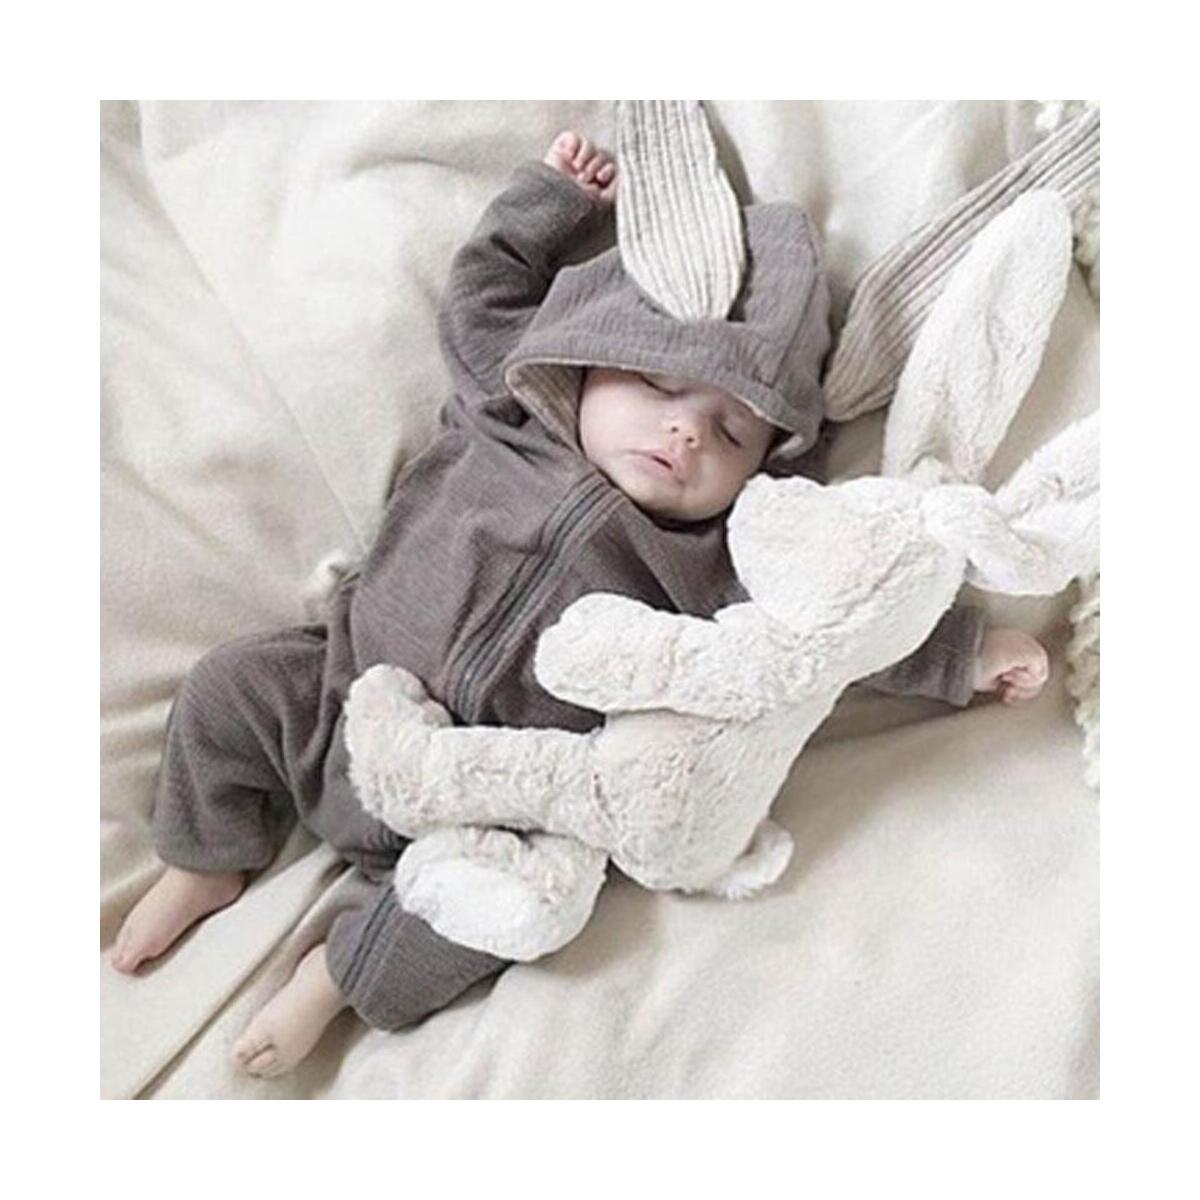 Newborn Baby Clothes Bunny Baby Rompers Cotton Hoodie Newborn Girl Onesies Fashion Infant Costume Boys Outfits Baby Outfit Set